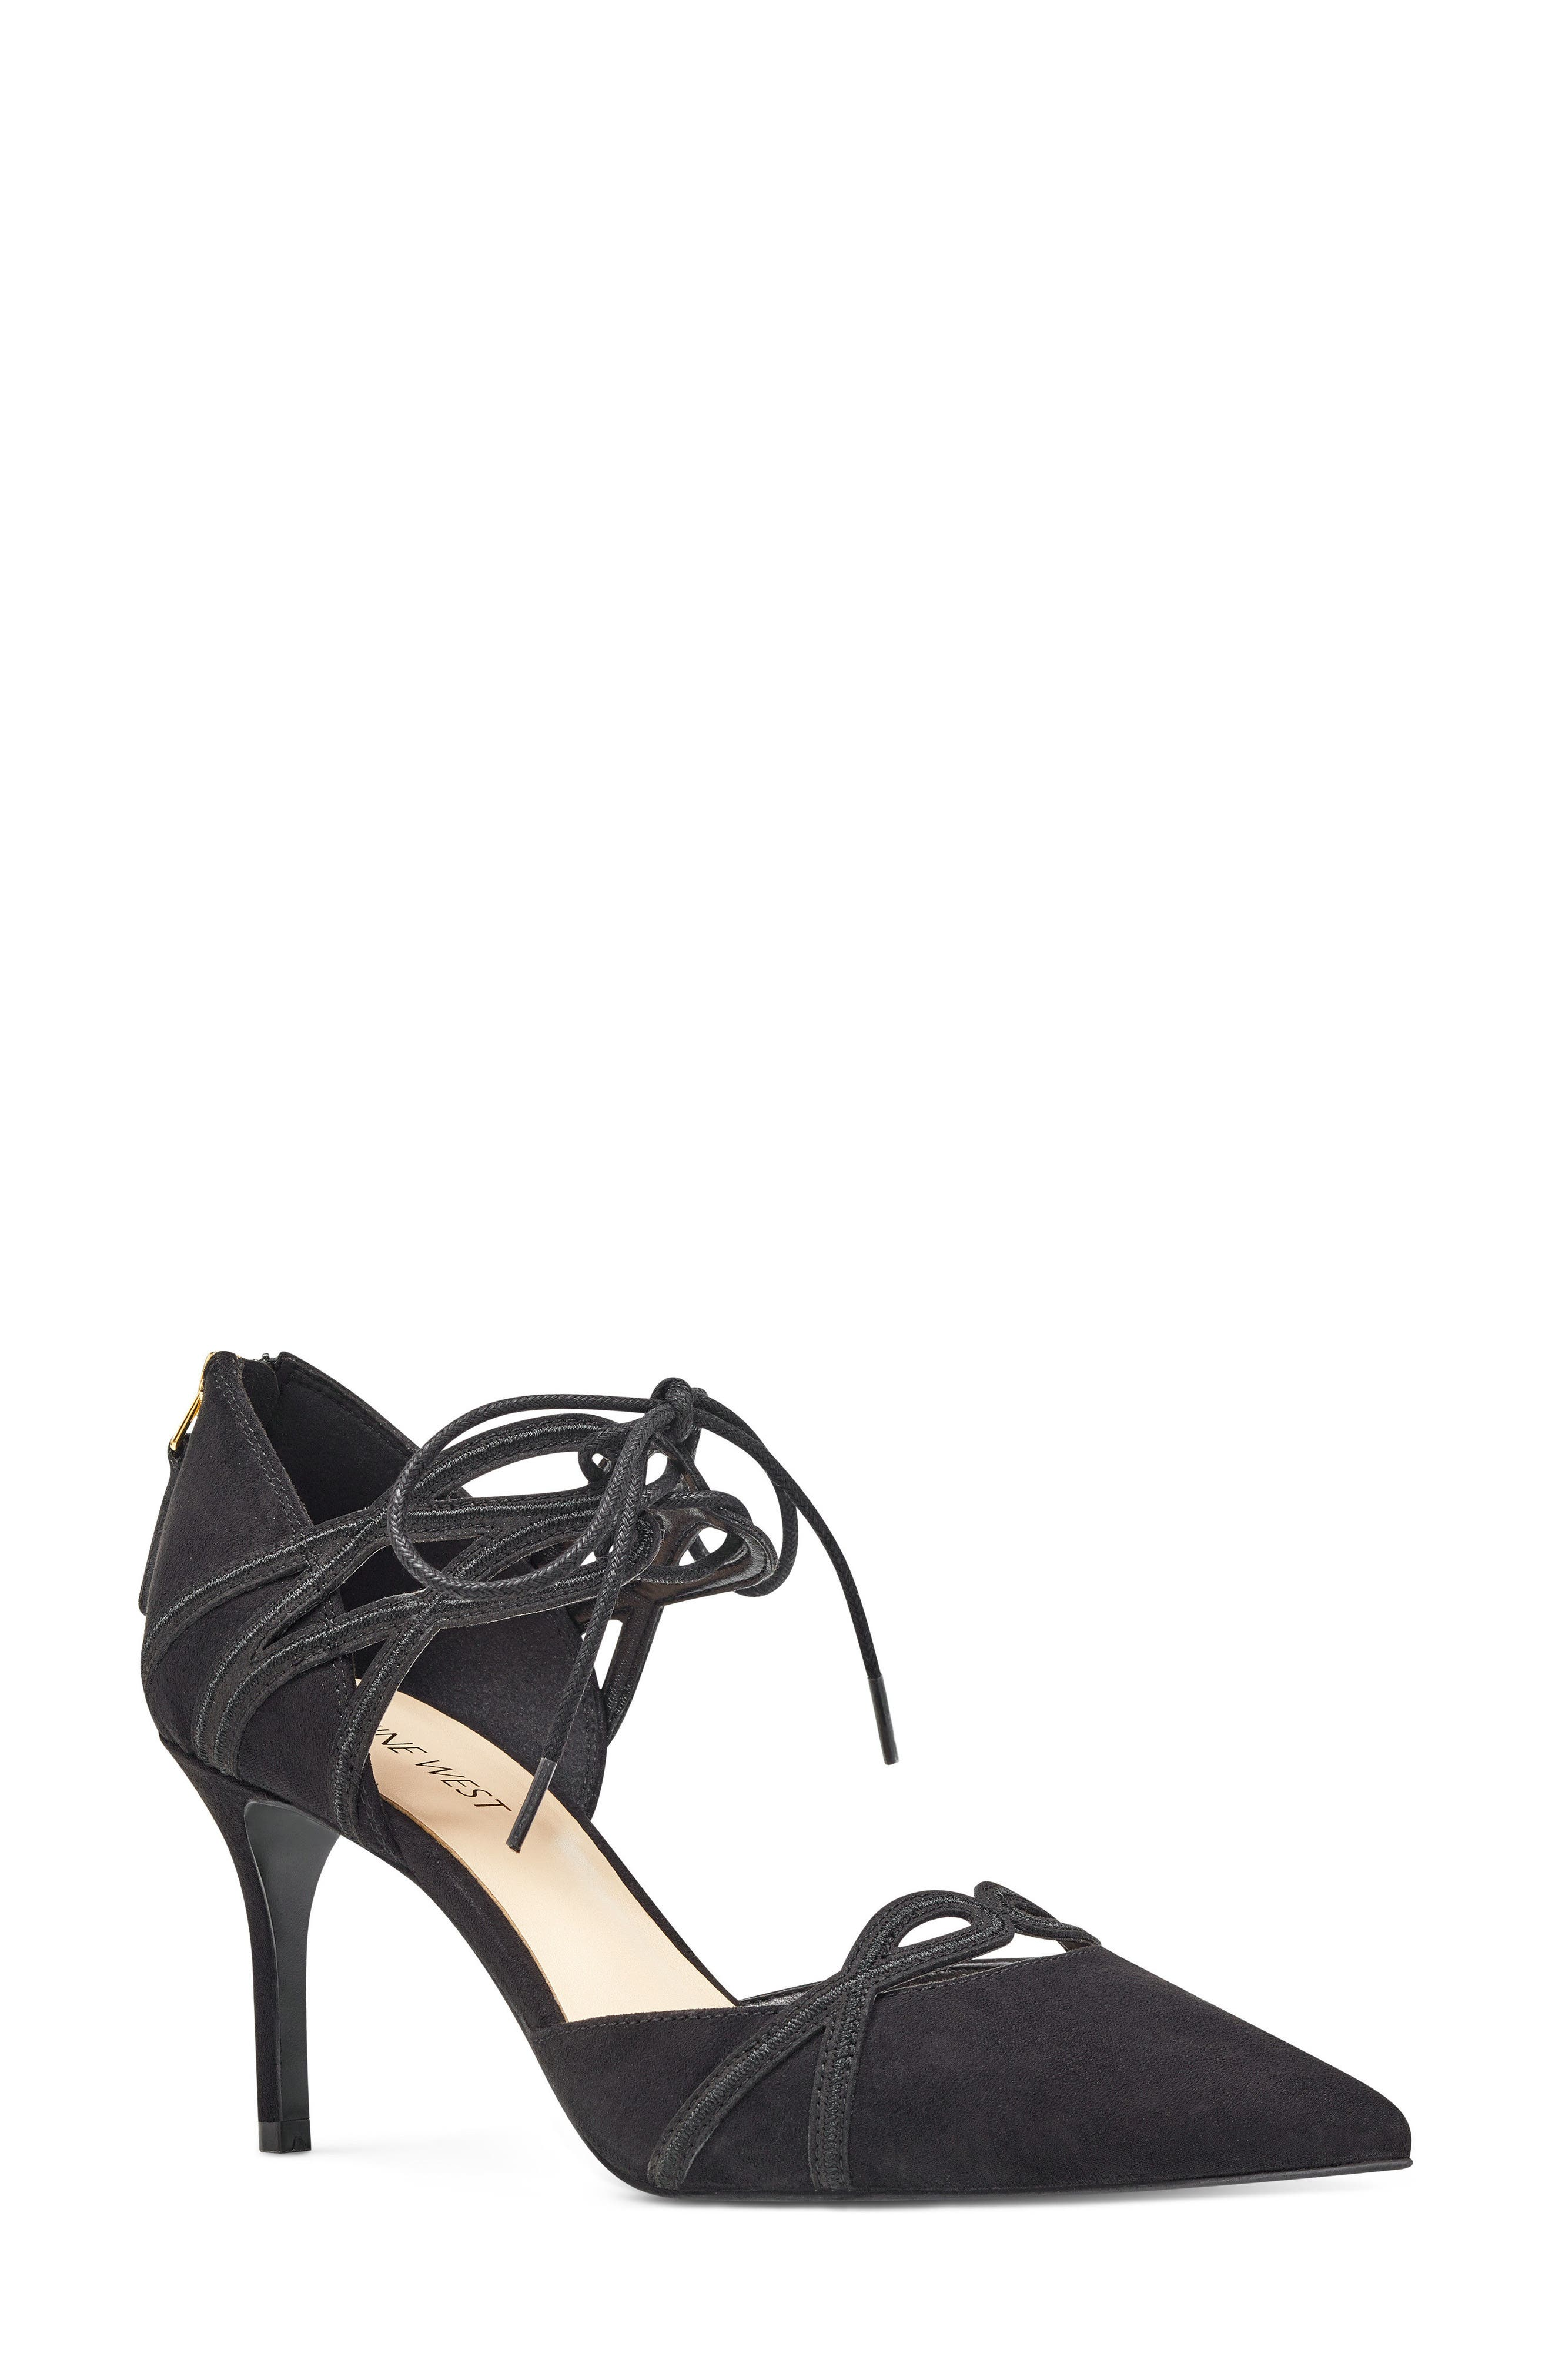 Alternate Image 1 Selected - Nine West Mayeff Ankle Tie Pump (Women)